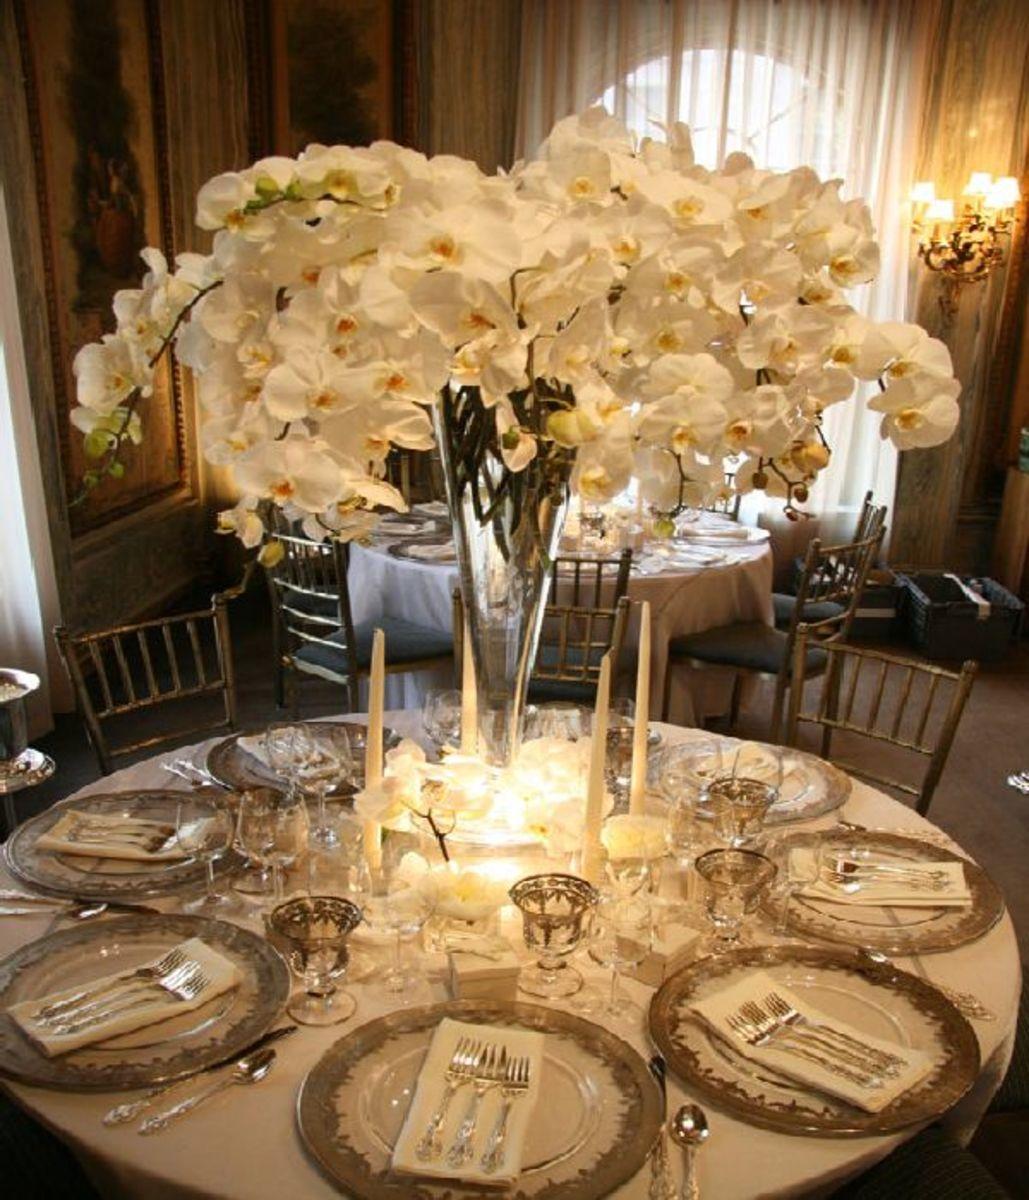 20 photos of wedding table d cor ideas creative table for Table decoration ideas